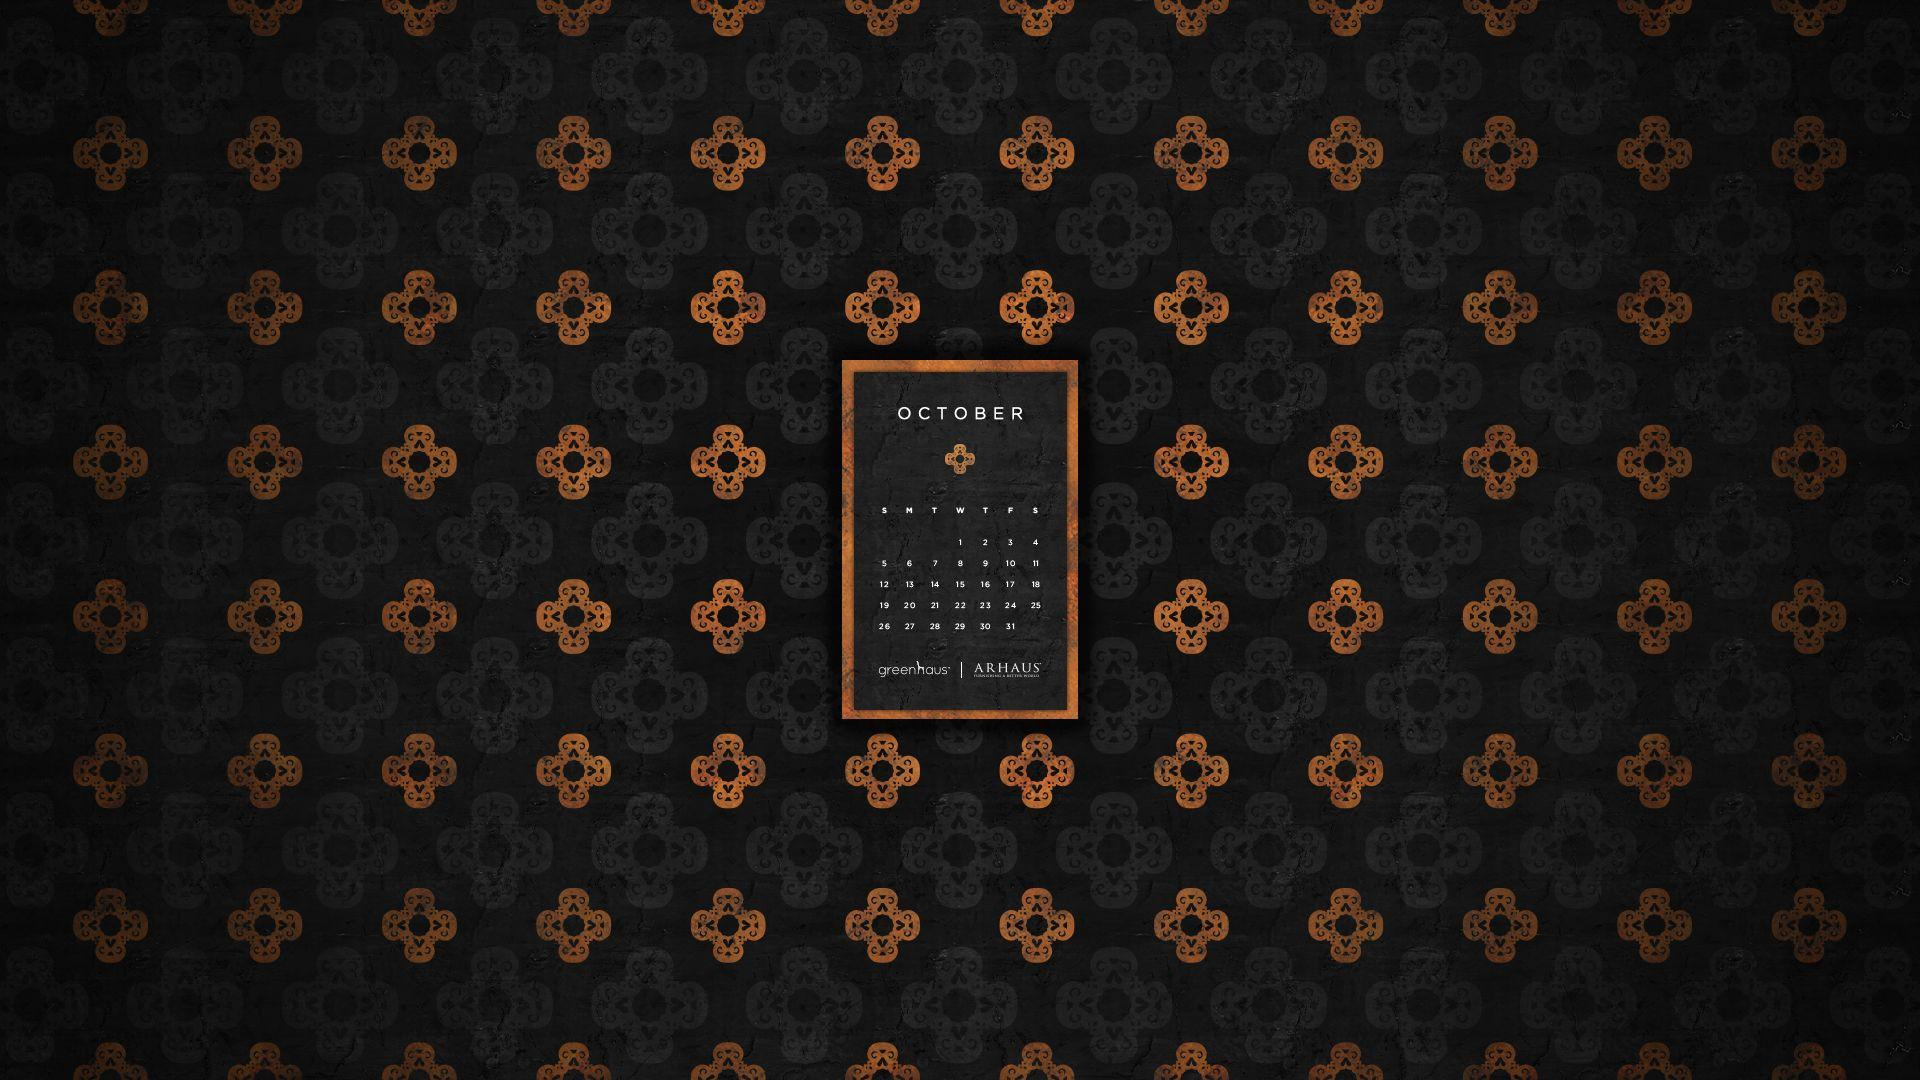 October's Calendar Celebrates Halloween In Style | Arhaus the Blog